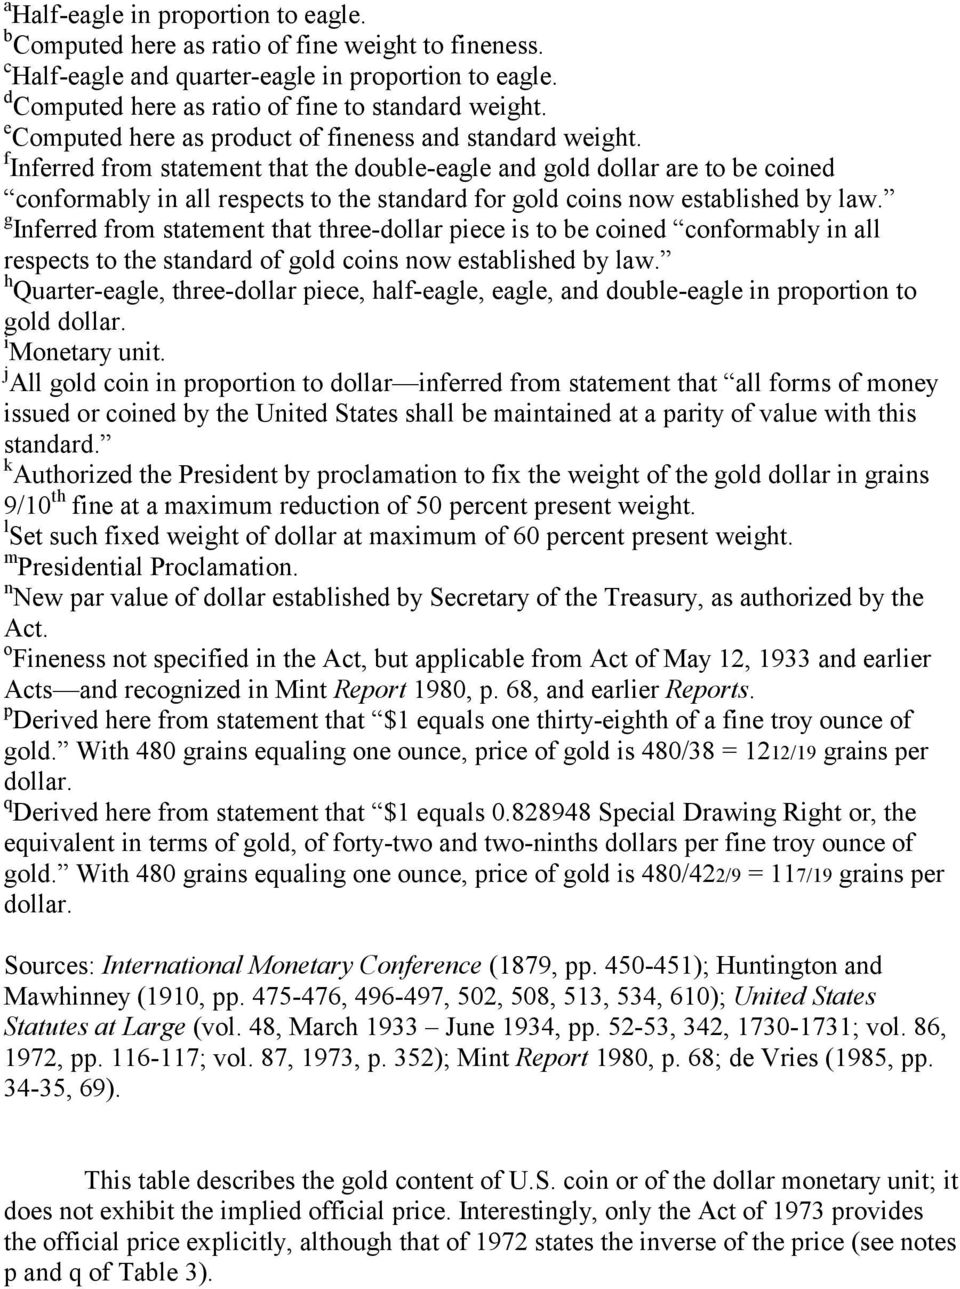 f Inferred from statement that the double-eagle and gold dollar are to be coined conformably in all respects to the standard for gold coins now established by law.